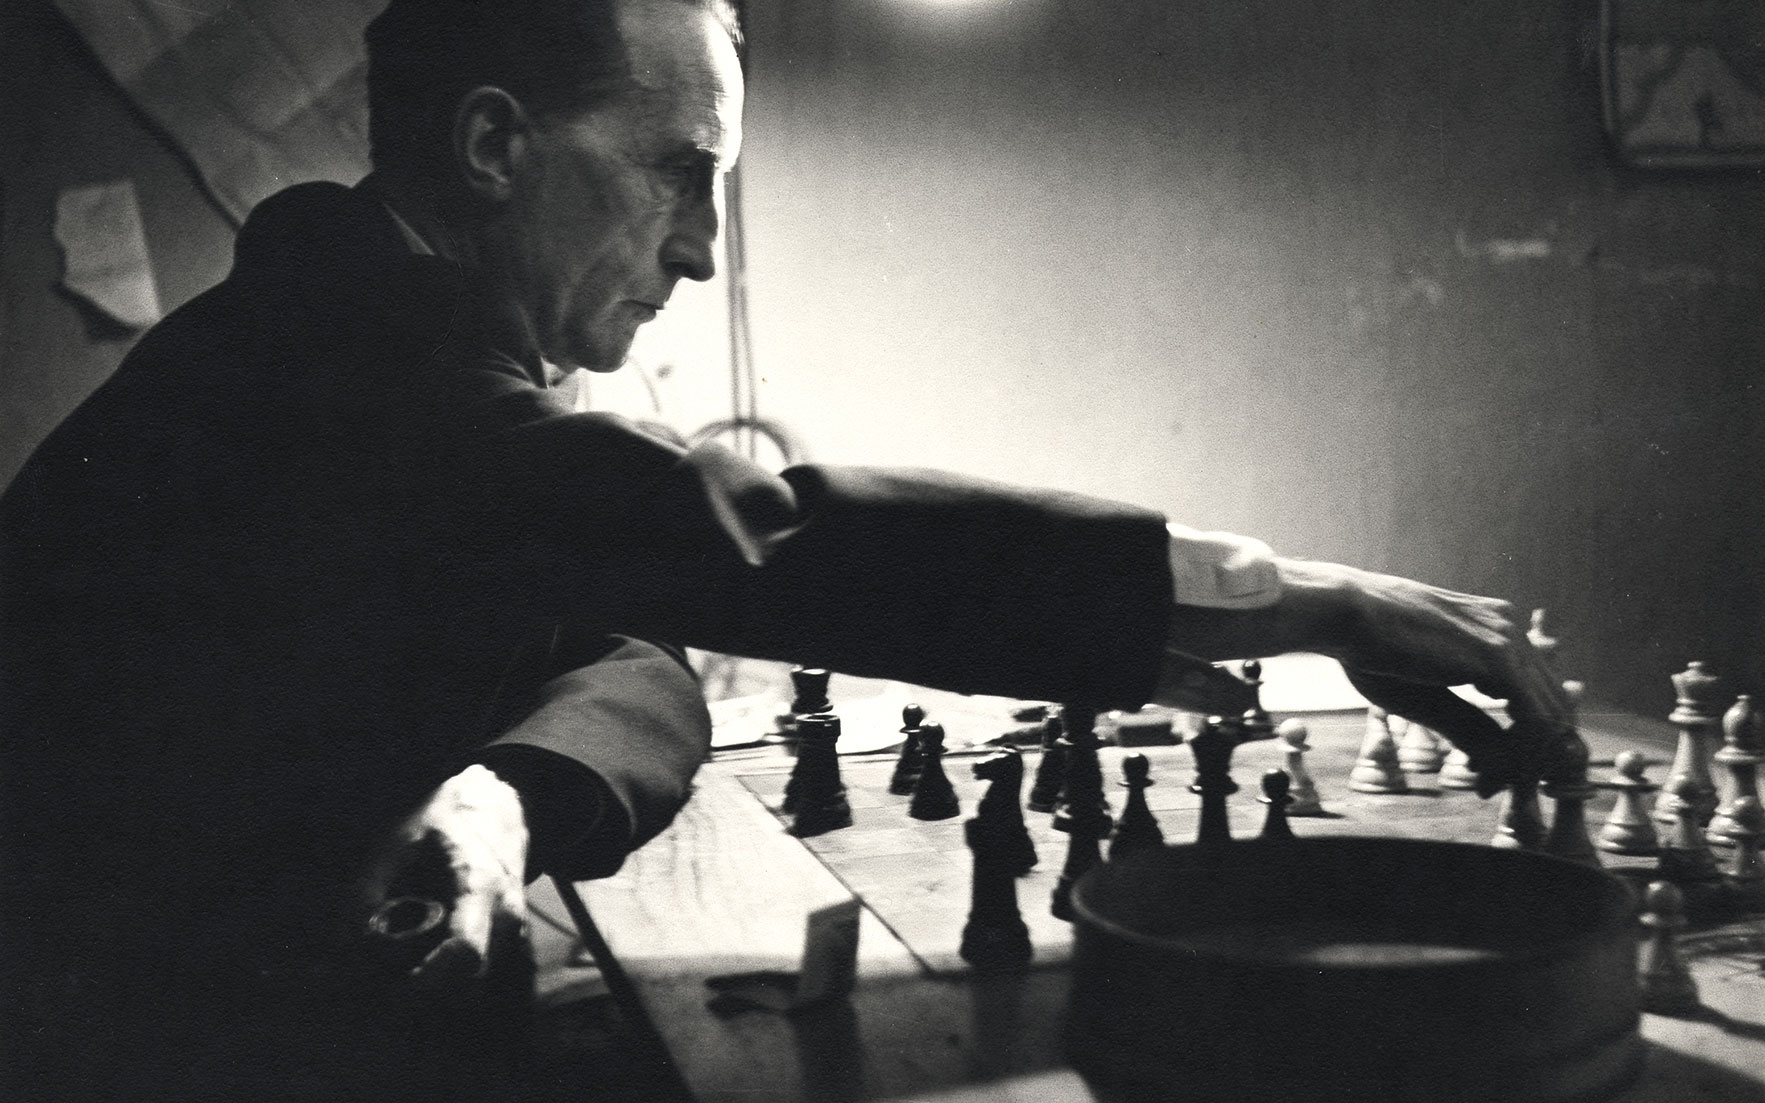 'Finding the right move': Marcel Duchamp and his passion for chess | Christie's